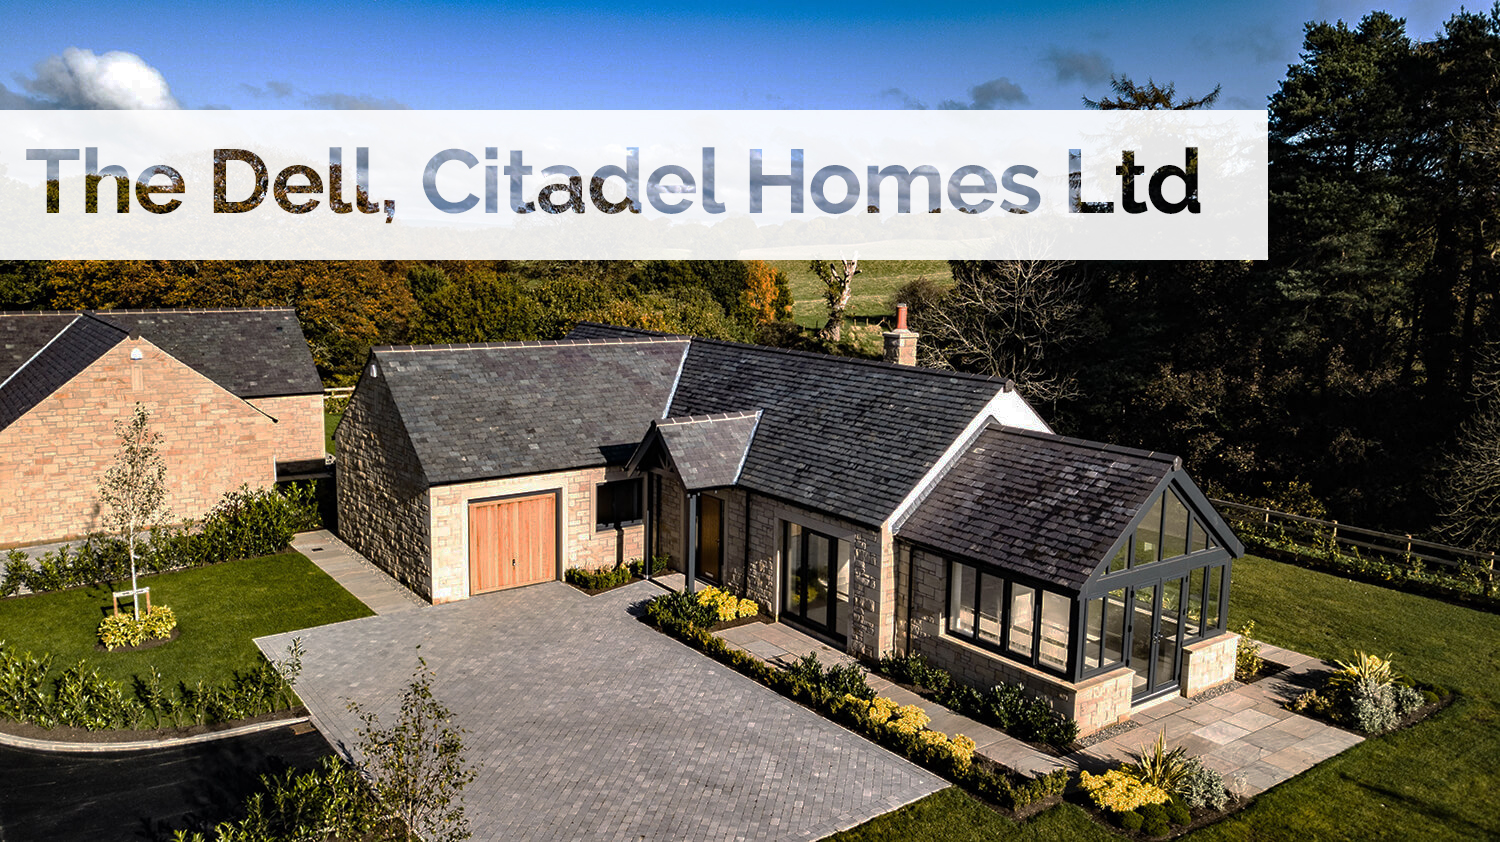 Plant supply to a new luxury development by Citadel Homes Ltd